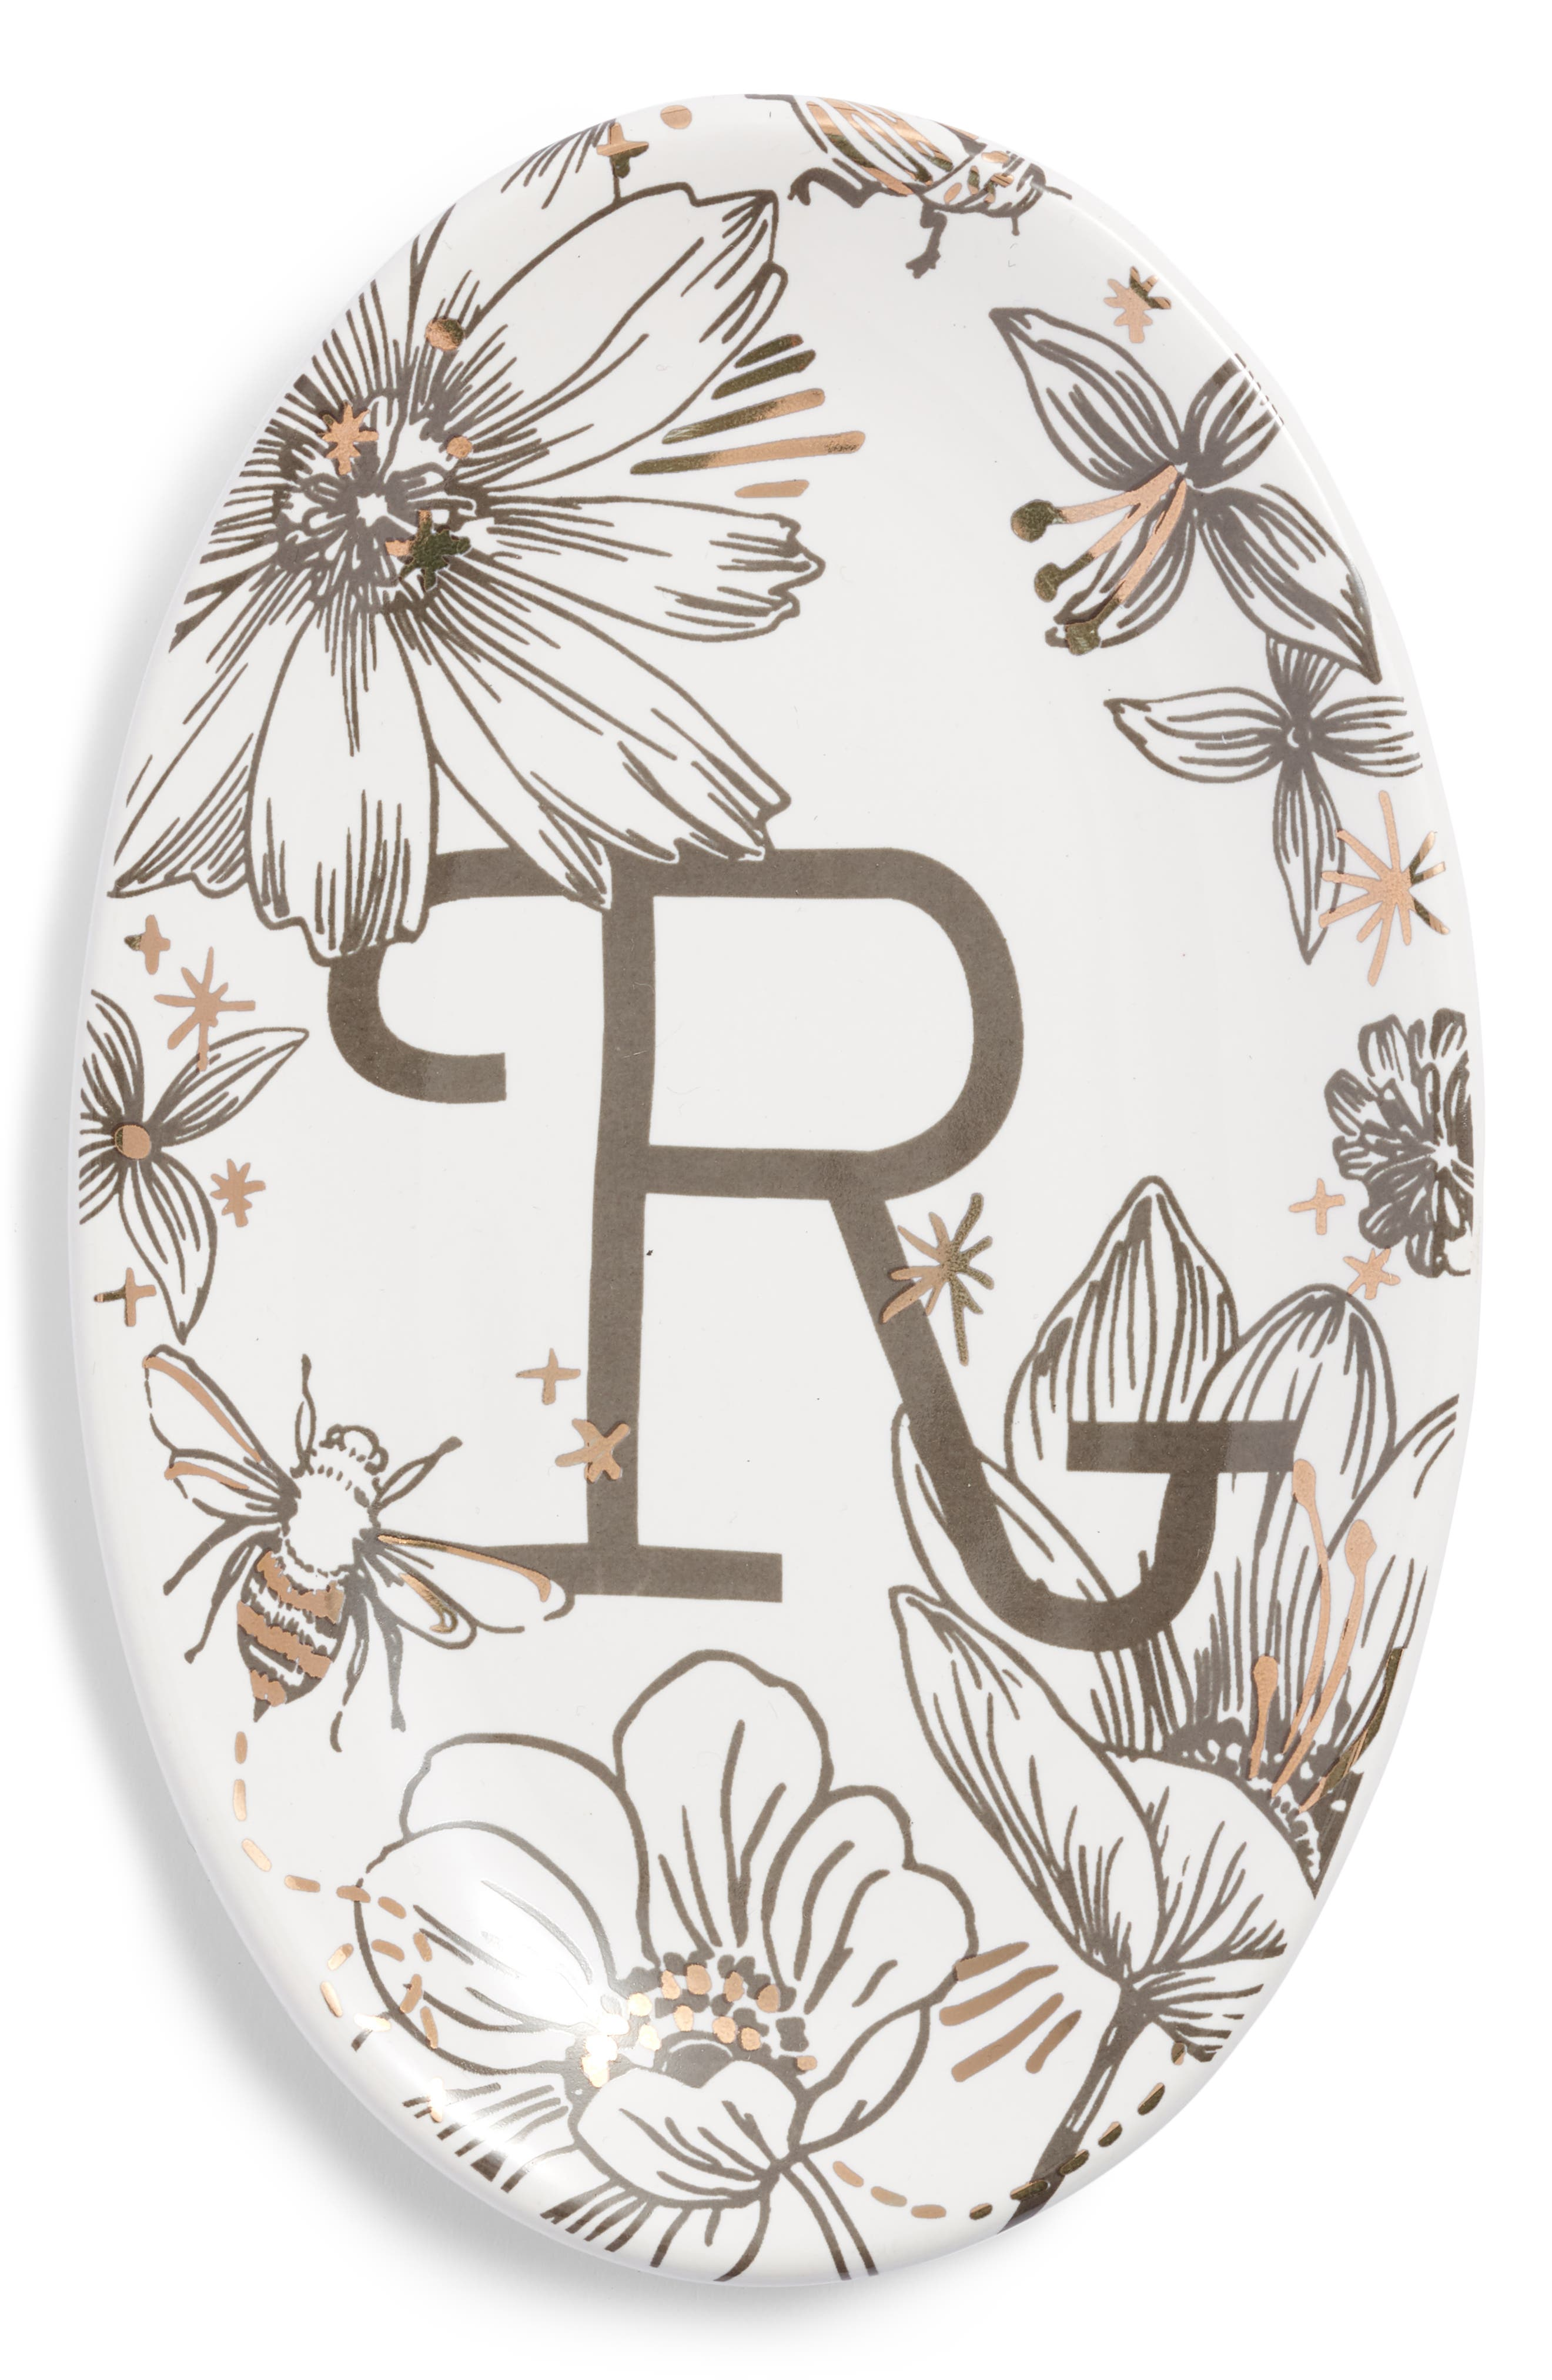 NORDSTROM AT HOME, Floral Monogram Trinket Tray, Main thumbnail 1, color, WHITE R